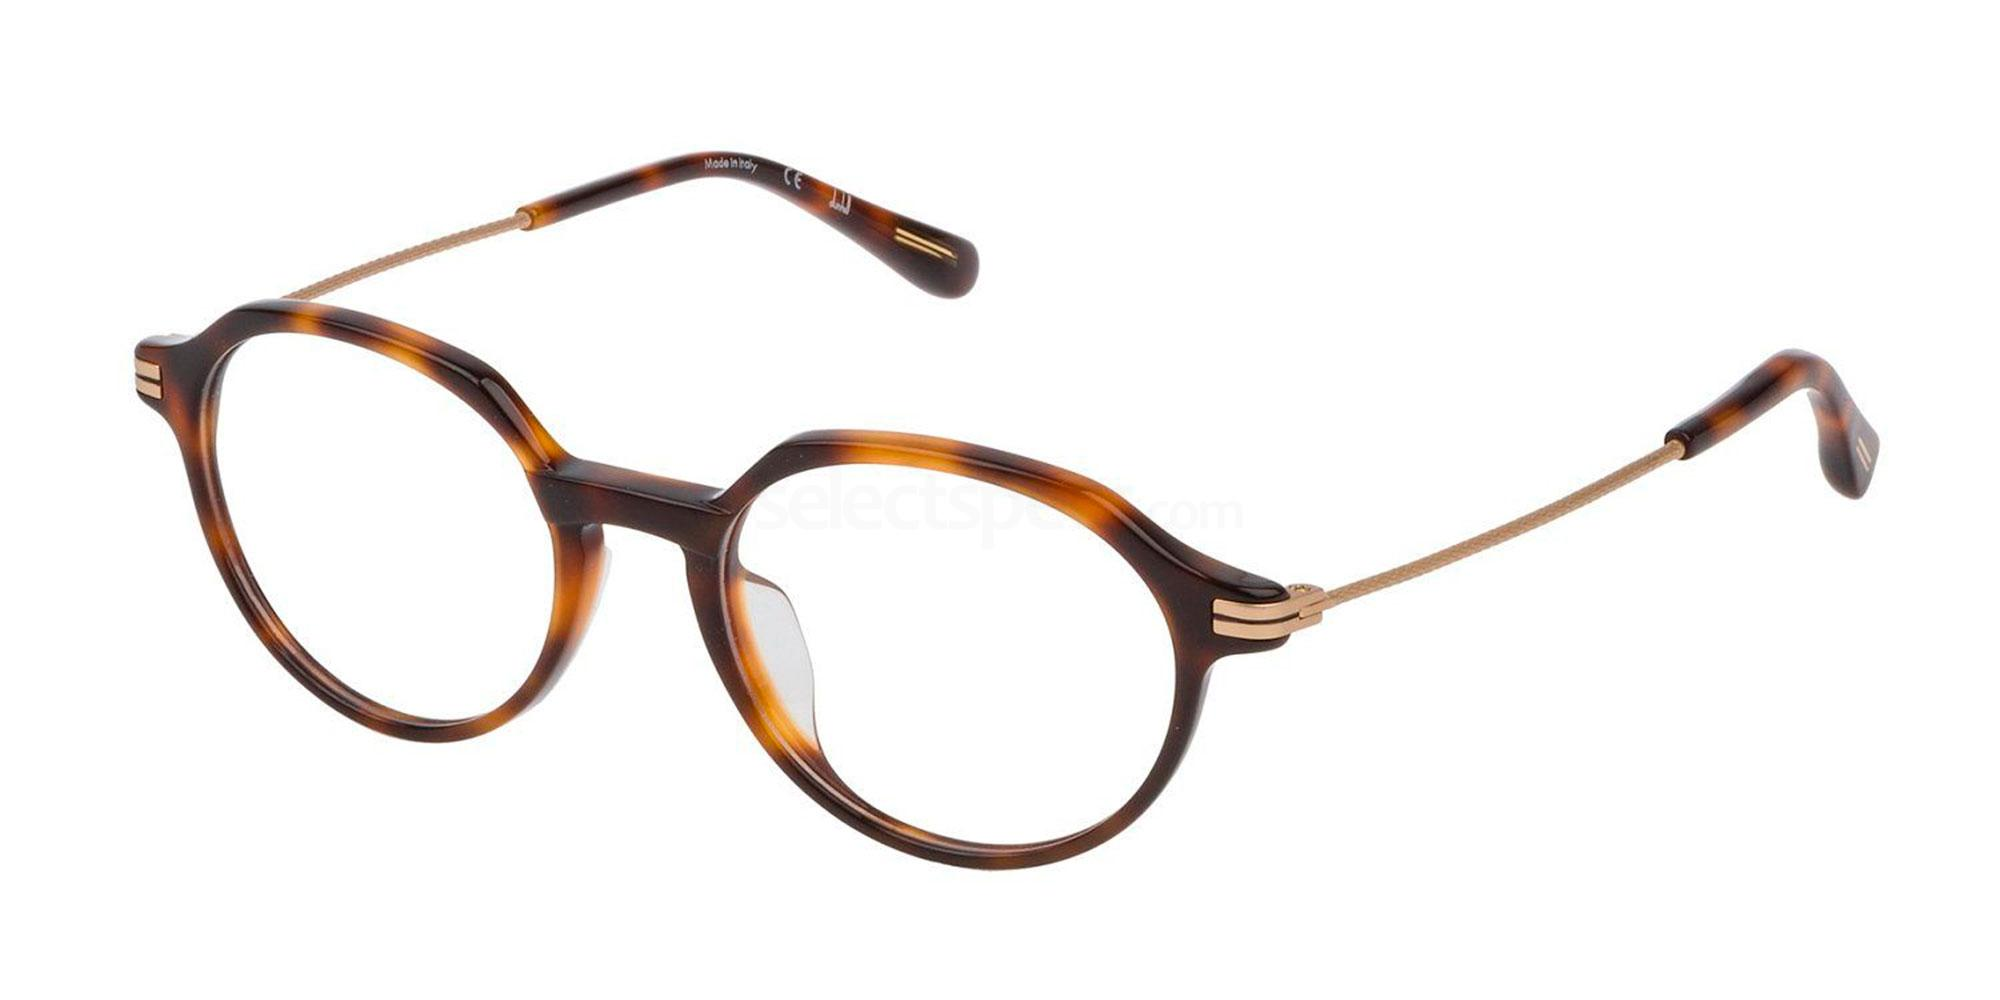 01AY VDH116G Glasses, Dunhill London